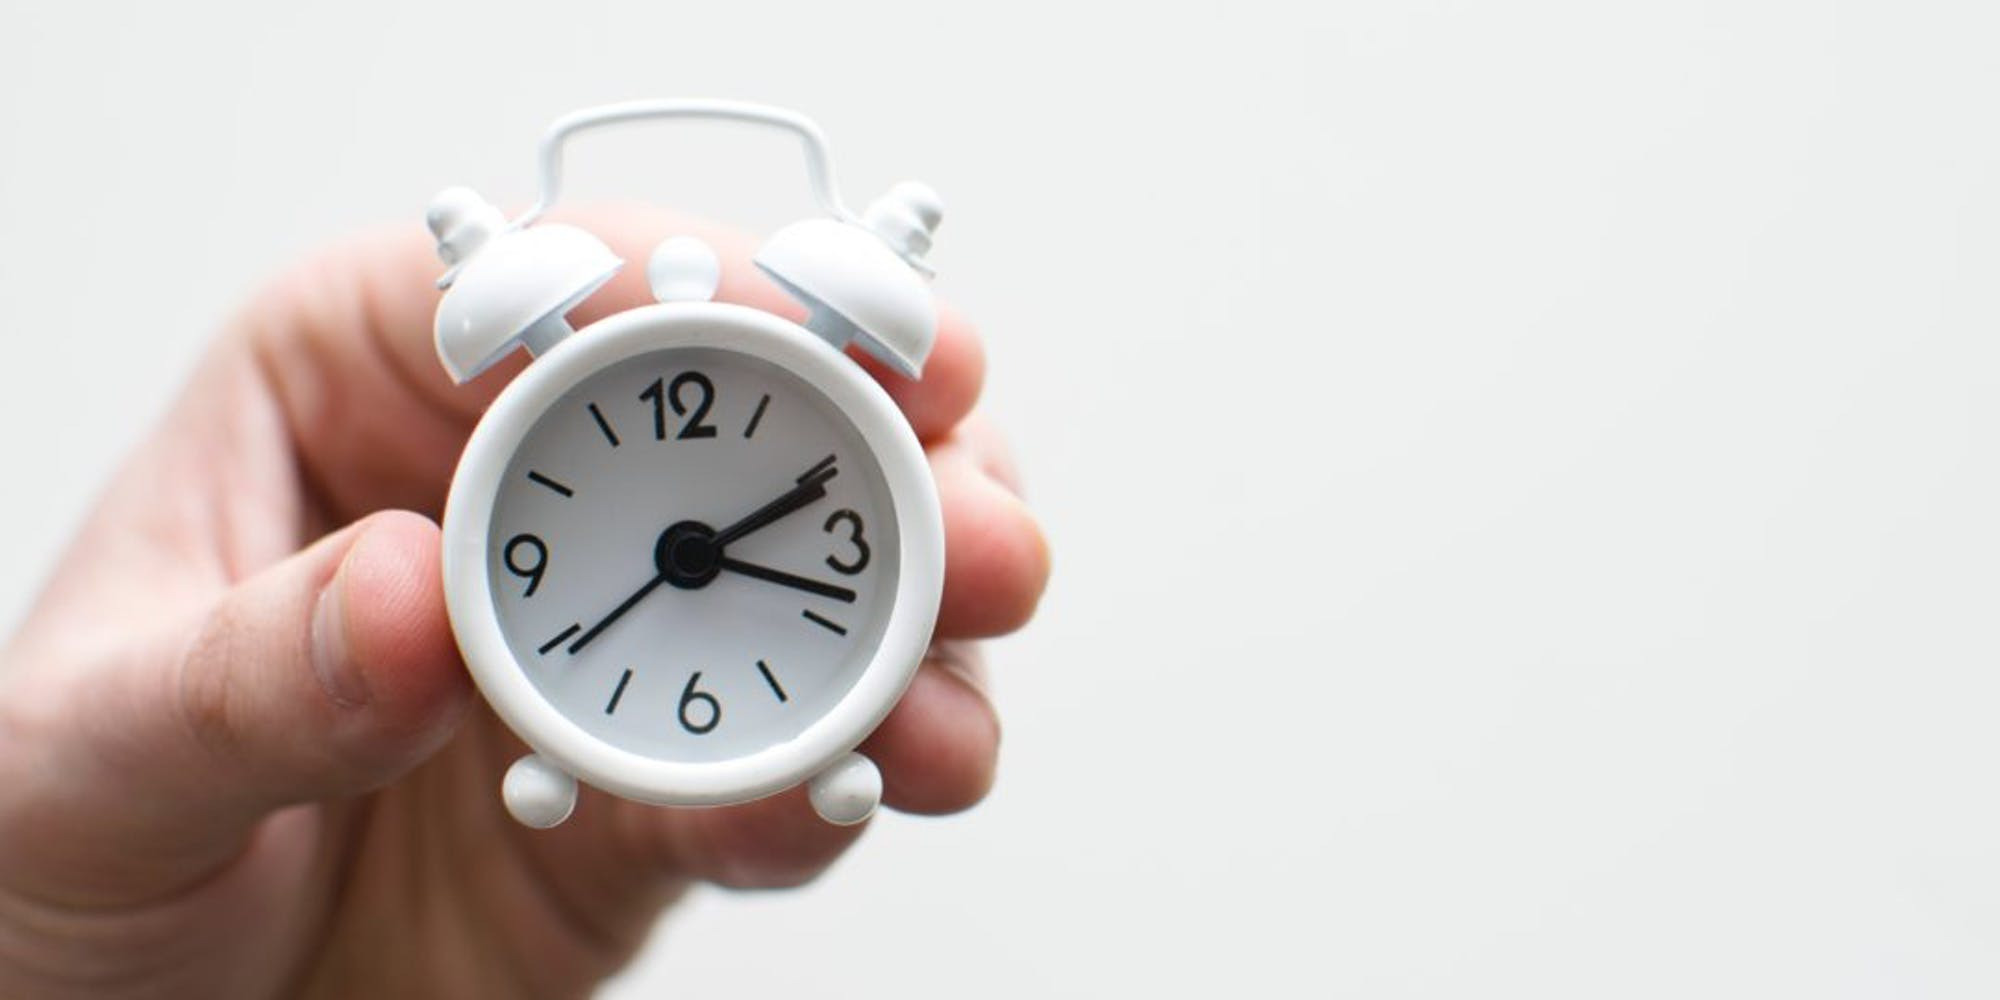 A person holding a tiny alarm clock